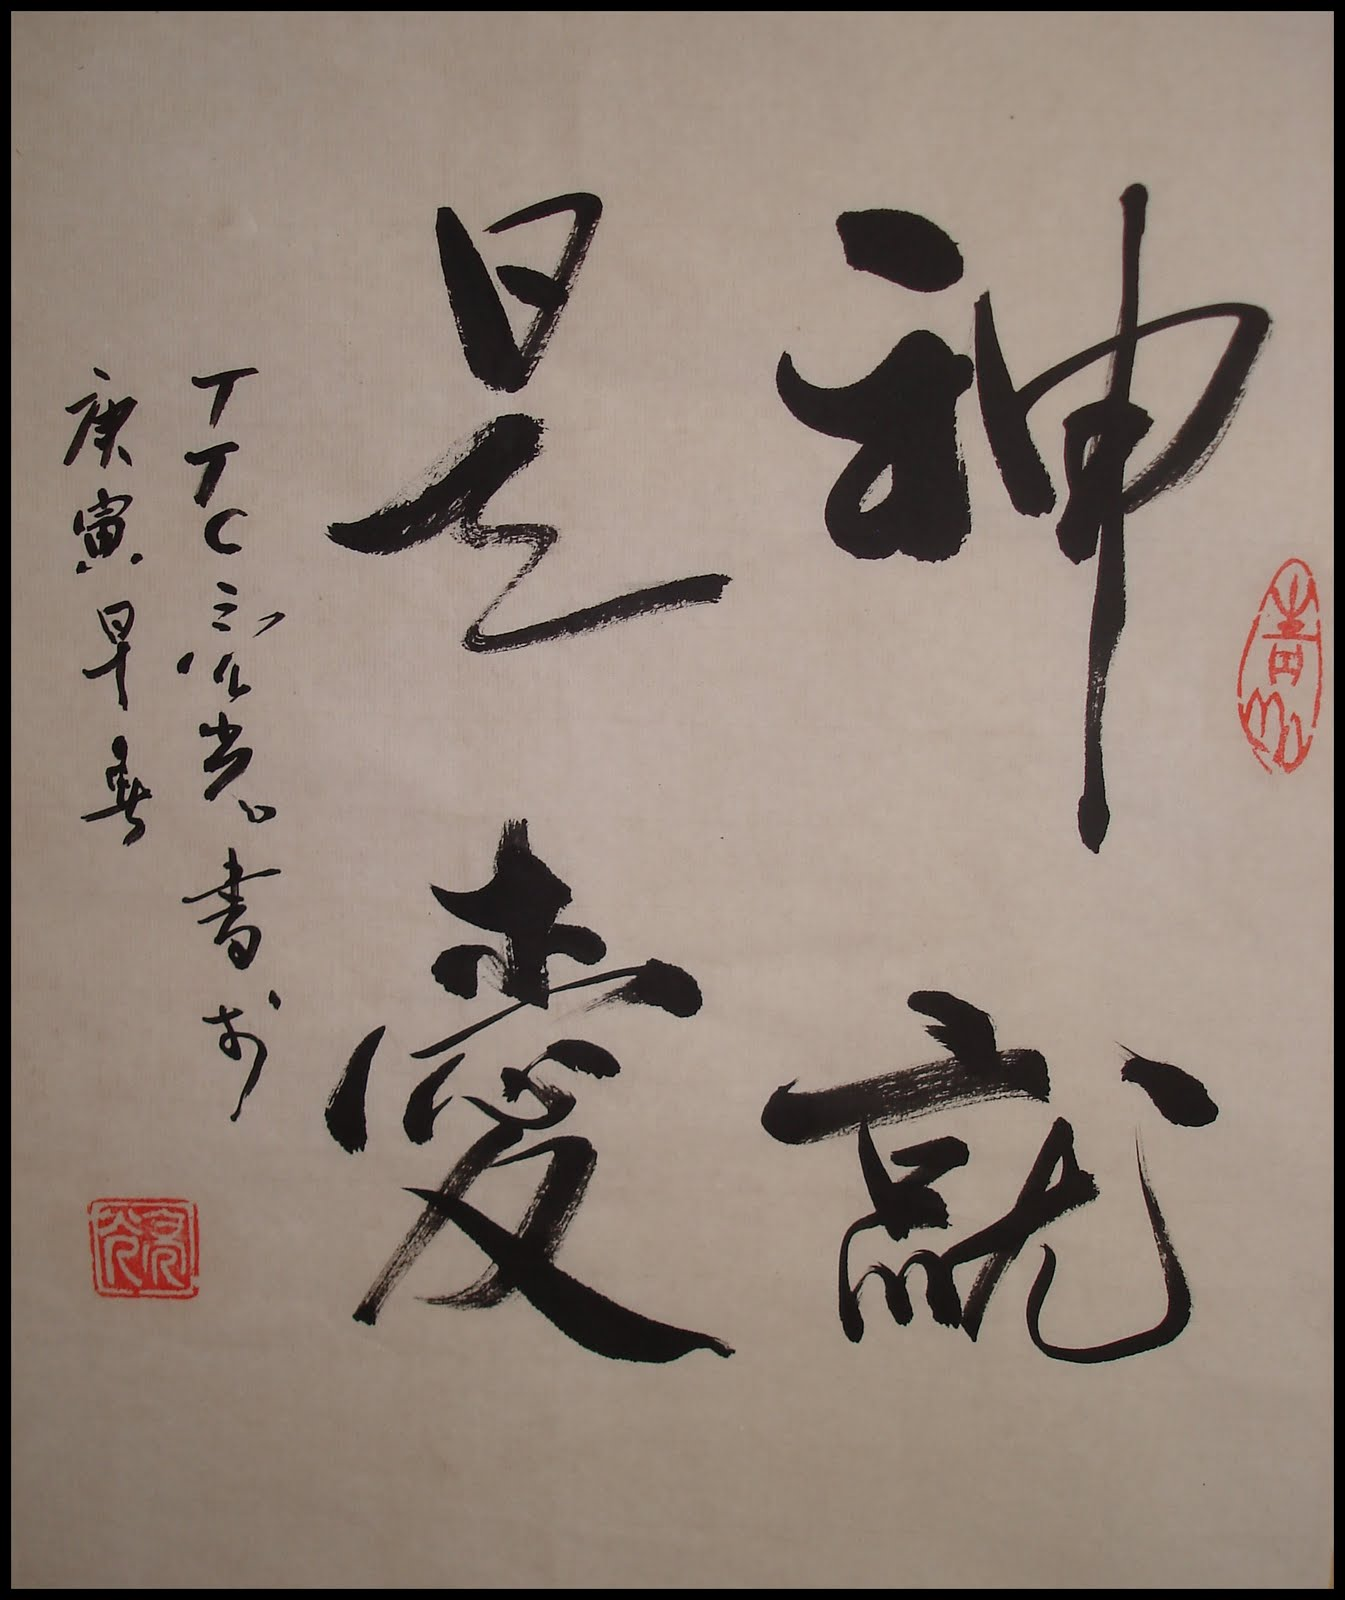 Xpressions Here There Chinese Calligraphy